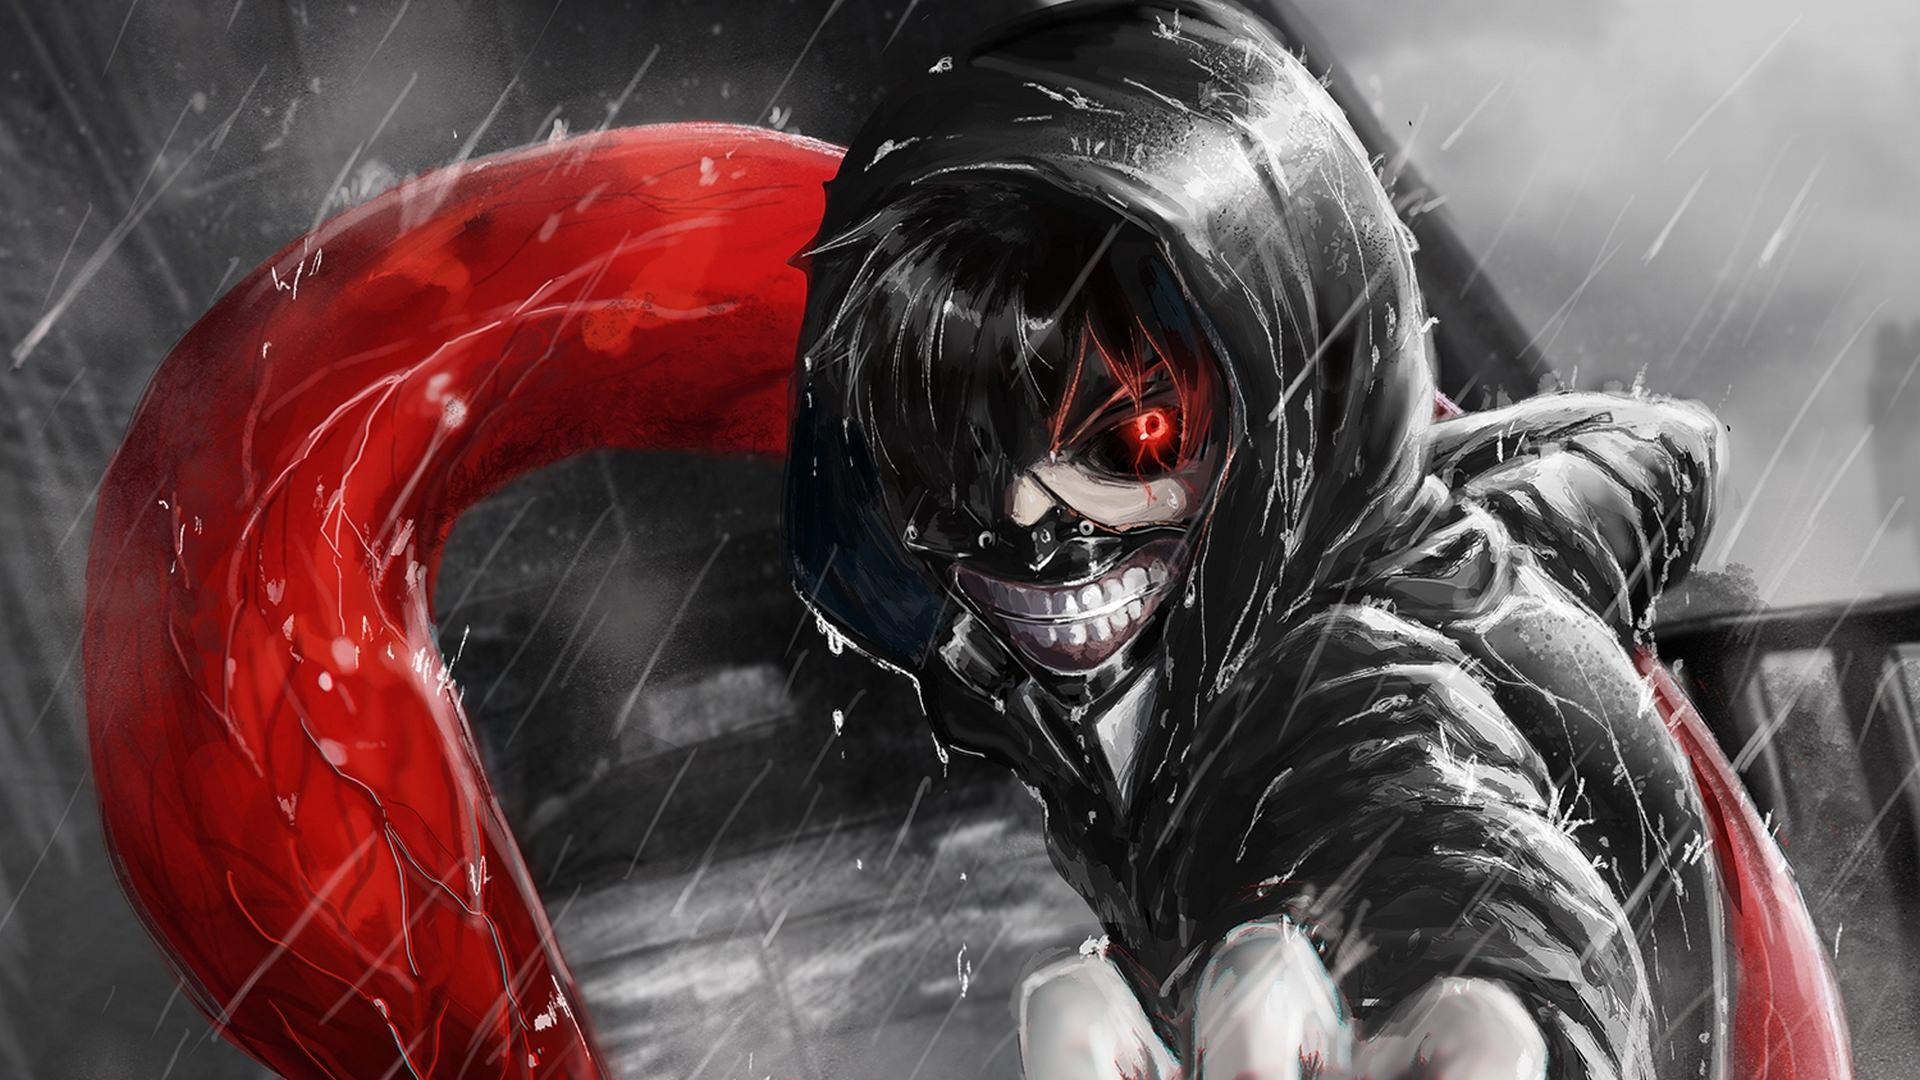 1920x1080 24+ Beautiful Anime Wallpapers In High-Resolution - Templatefor